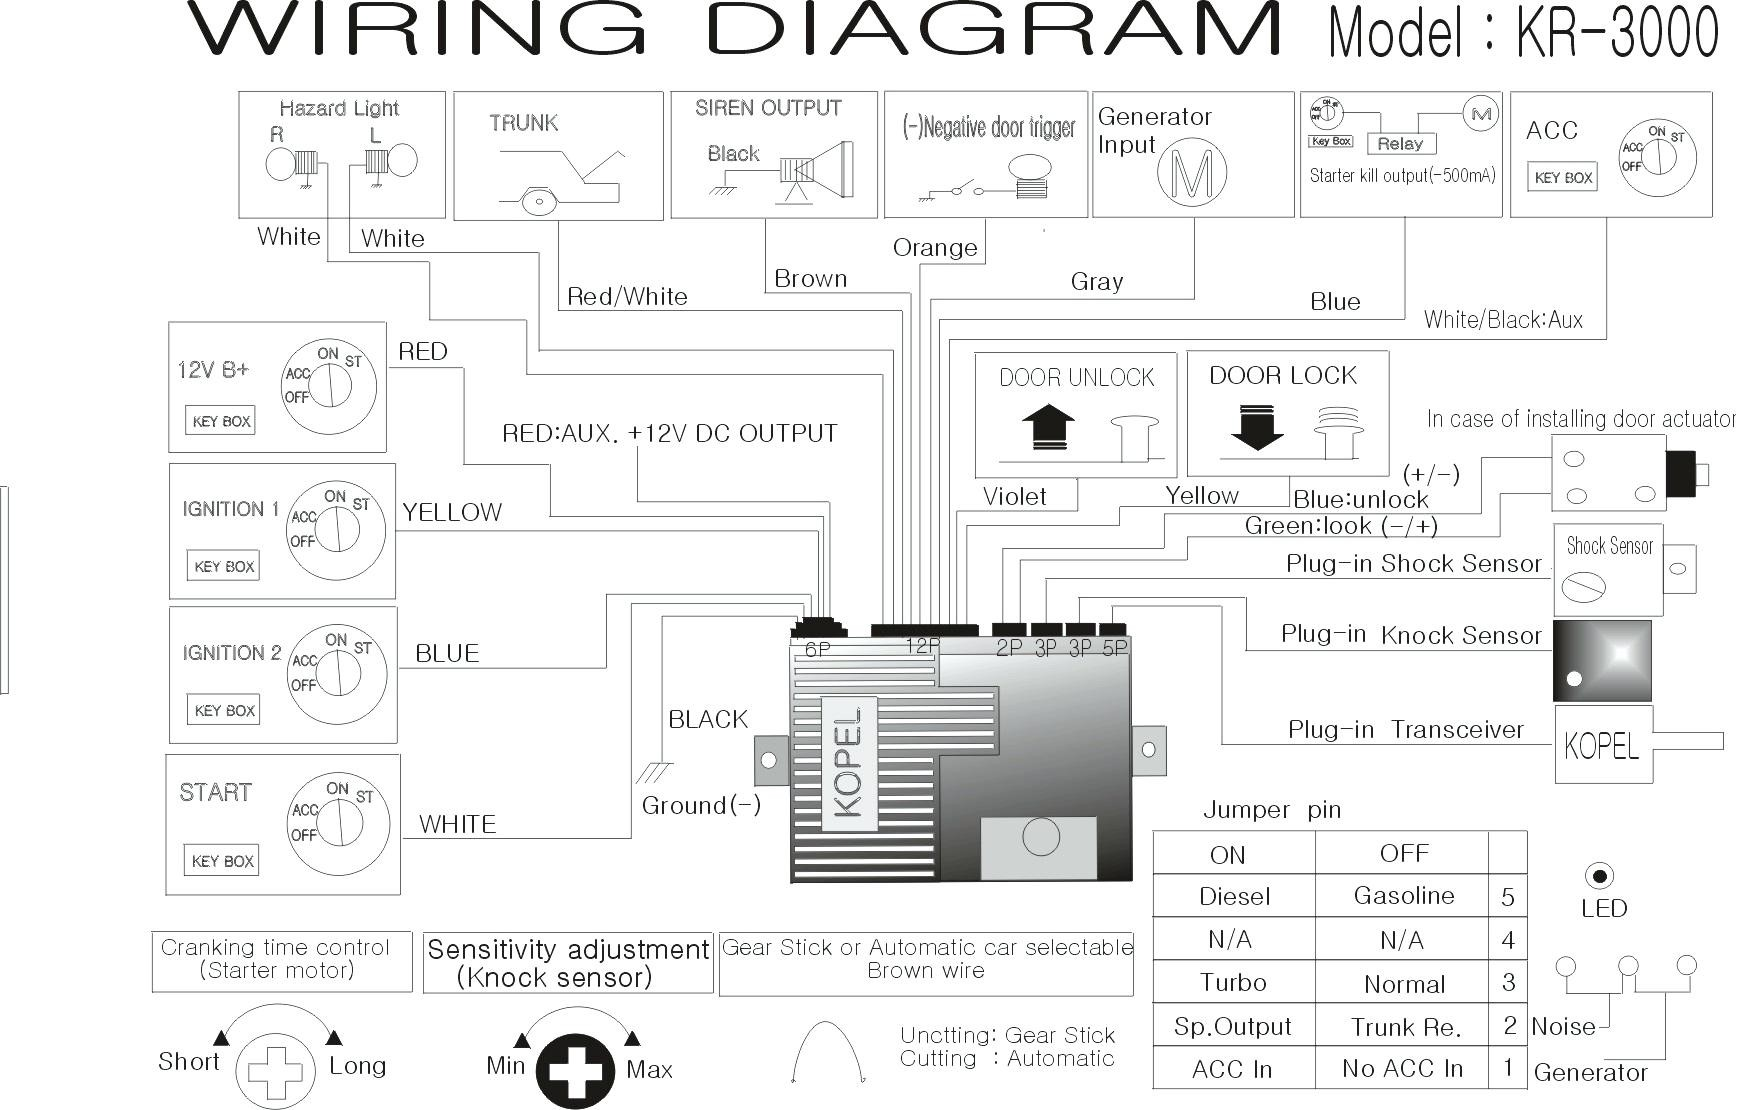 Home Security System Wiring Diagram Car Security System Wiring Diagram Copy Wiring Diagram for Ceiling Of Home Security System Wiring Diagram